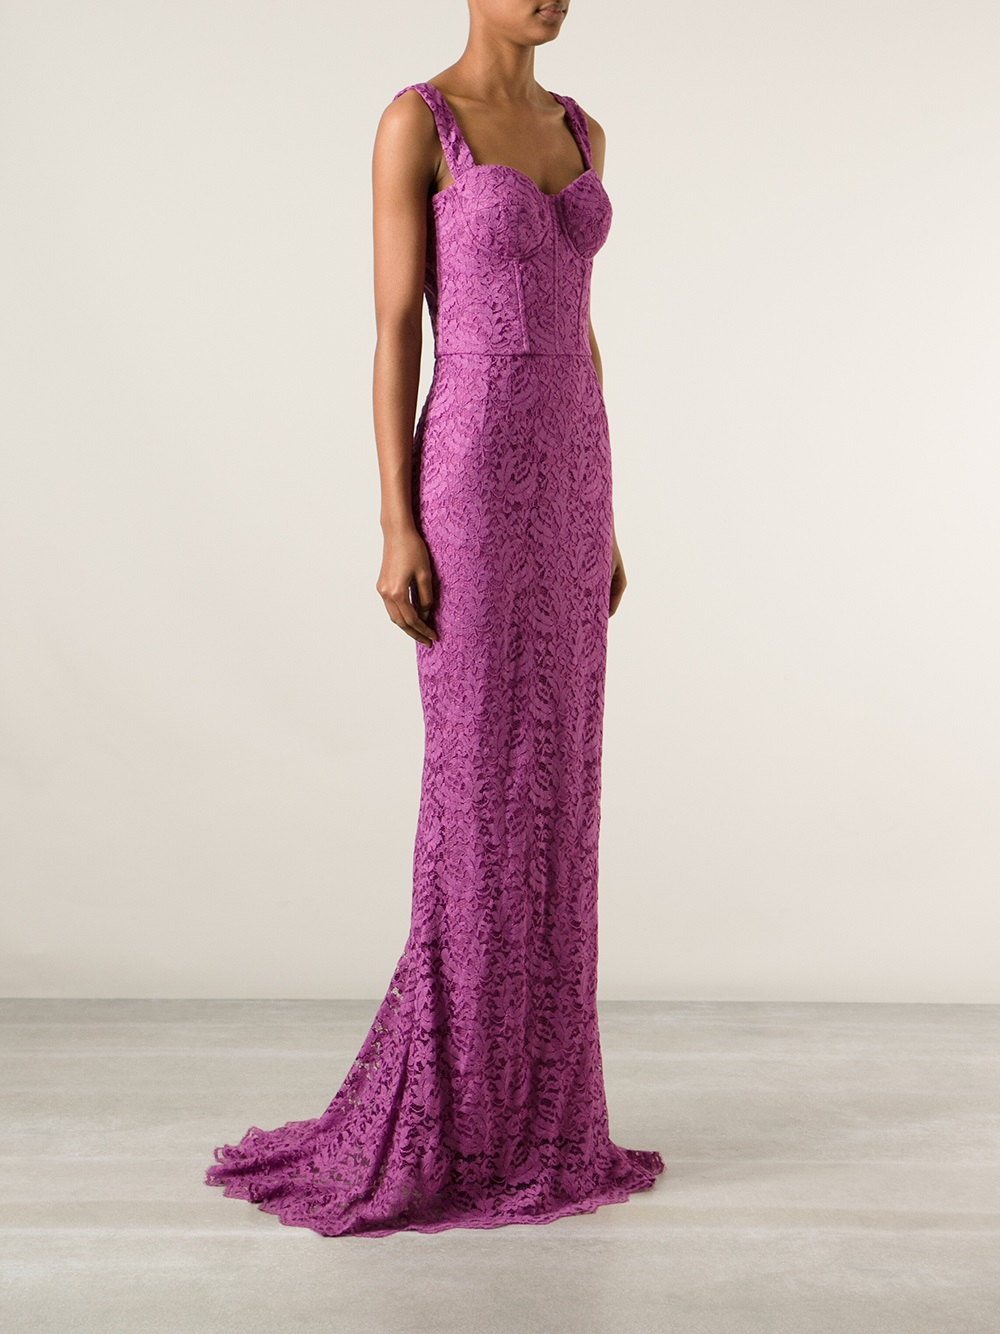 lyst dolce gabbana lace evening dress in purple. Black Bedroom Furniture Sets. Home Design Ideas